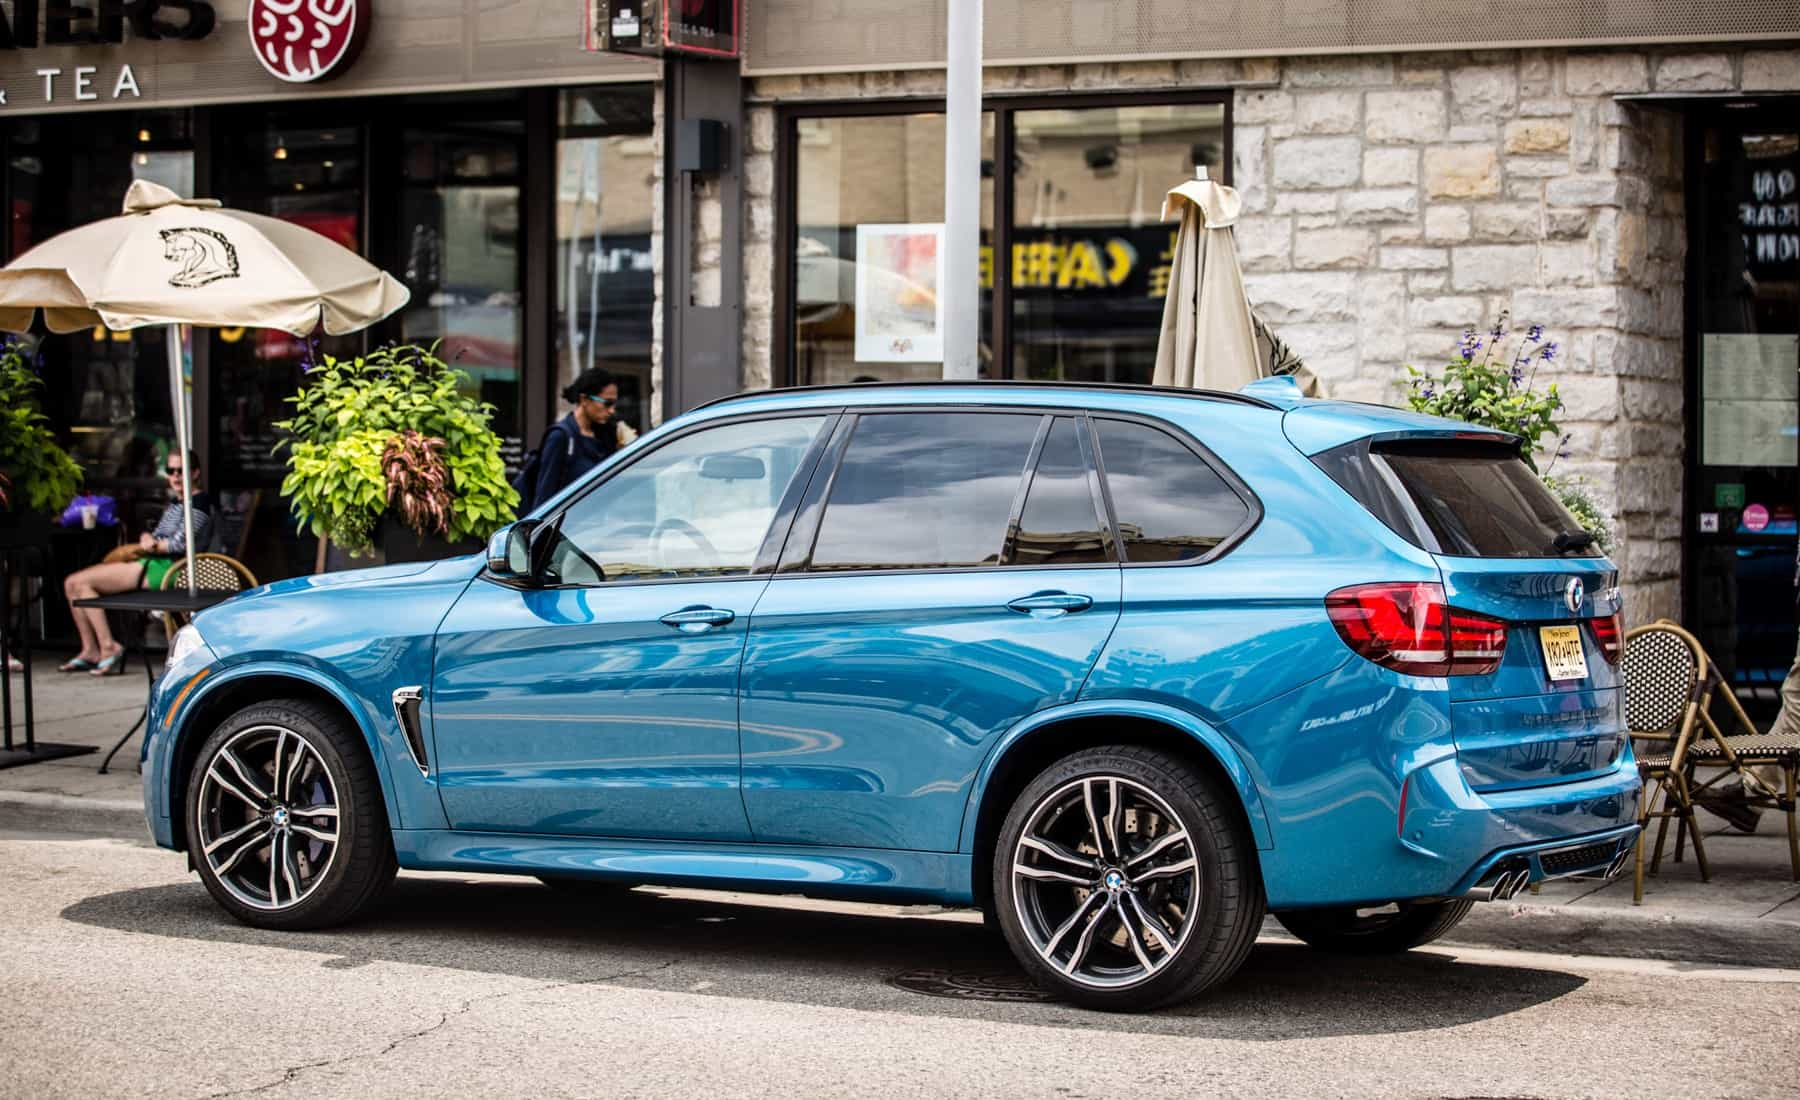 2017 BMW X5 M Exterior Side And Rear (Photo 5 of 35)